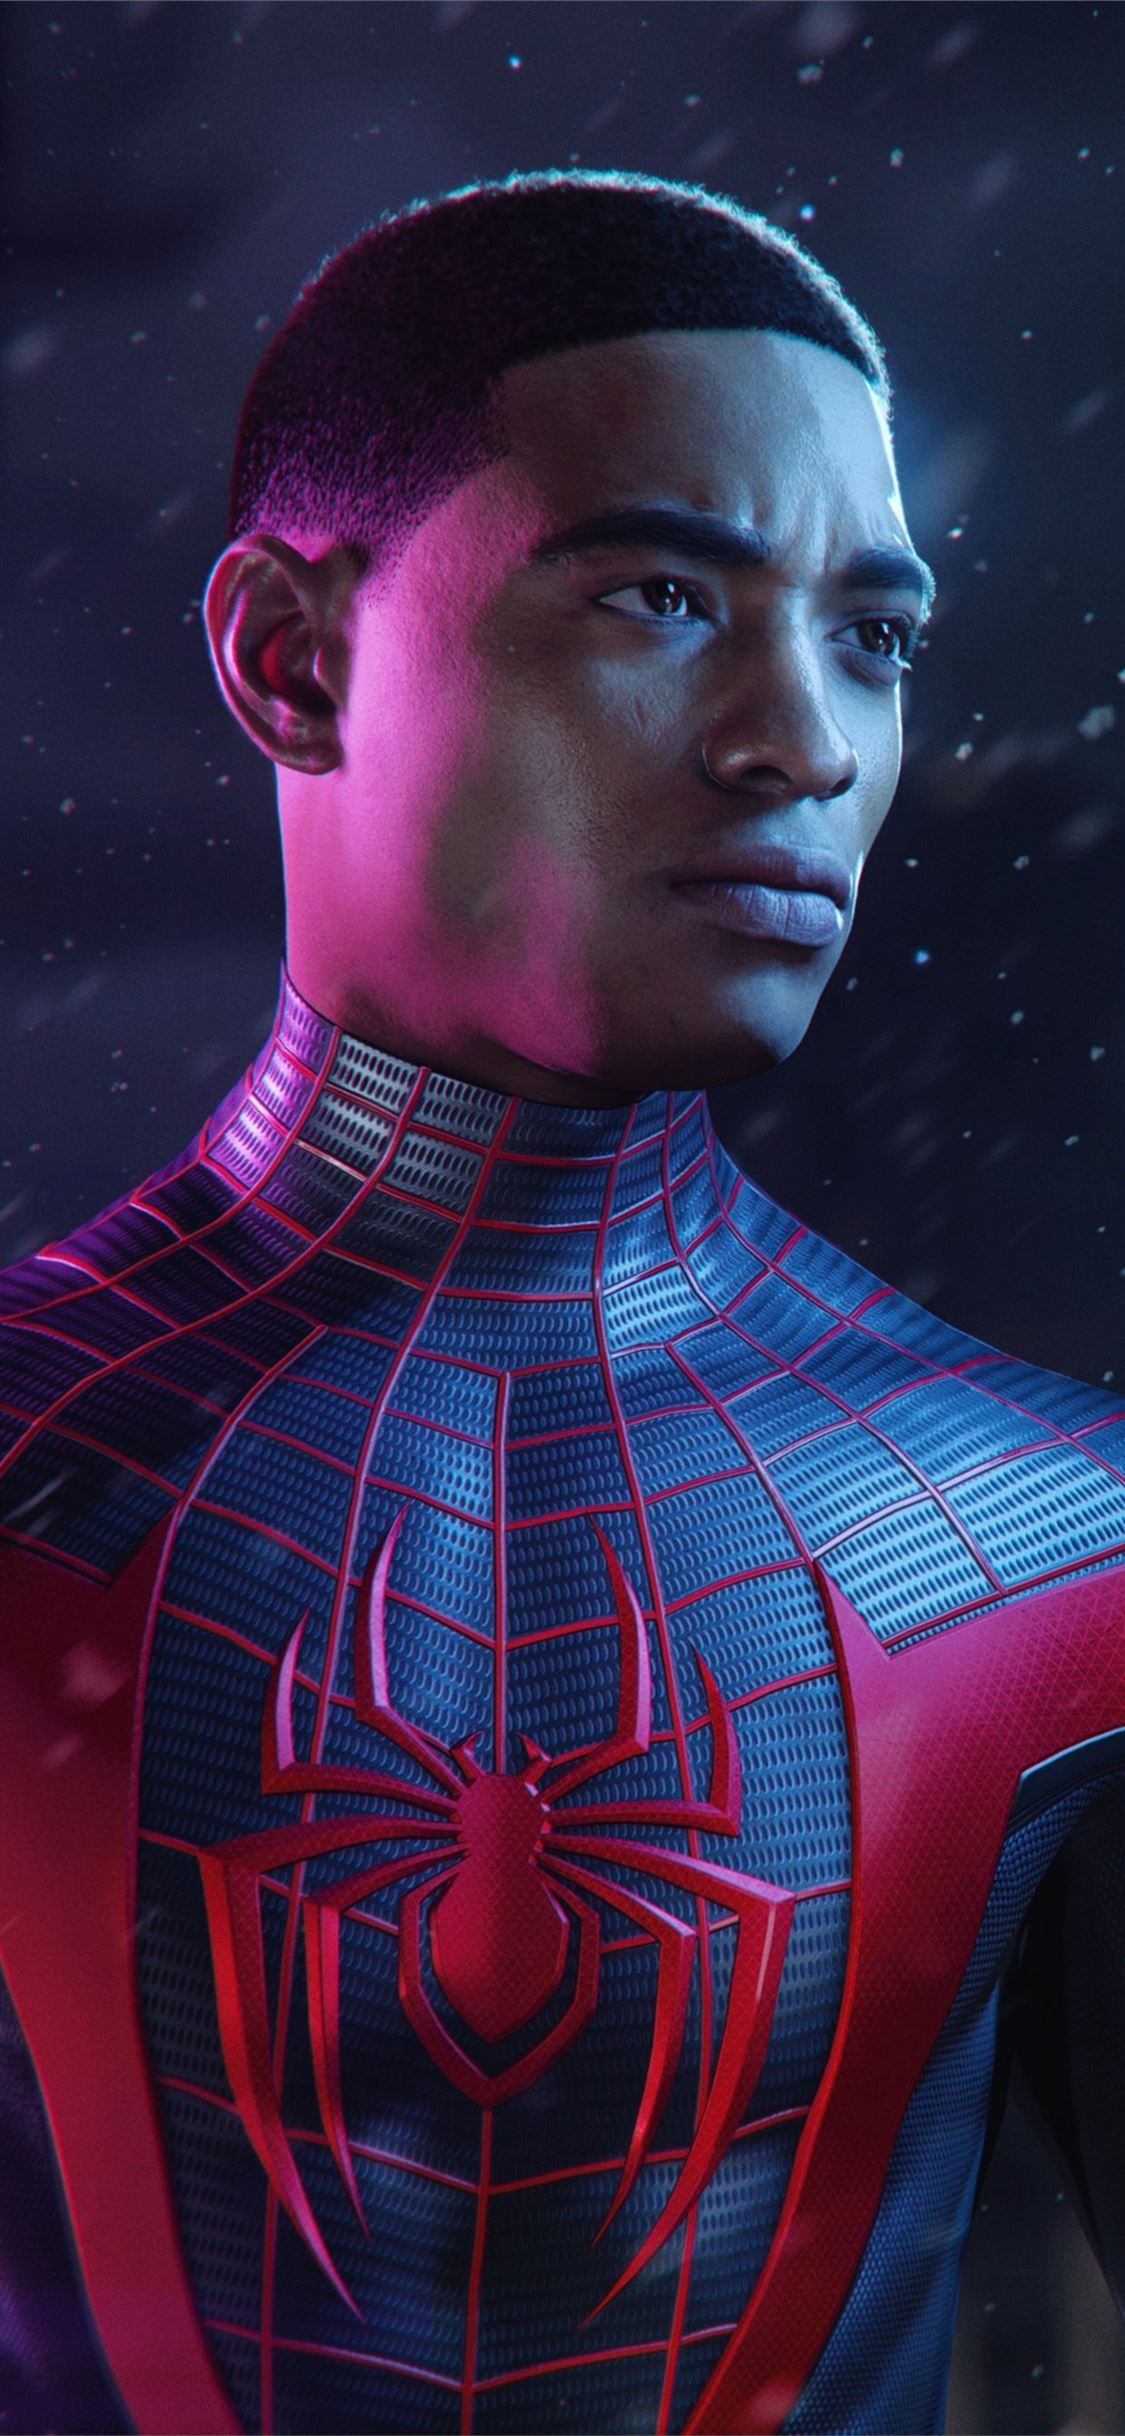 Spider Man Miles Morales Ps5 Spidermanmilesmorales Games 2020games Ps5games Psgames S Miles Morales Spiderman Spiderman Pictures Marvel Superhero Posters